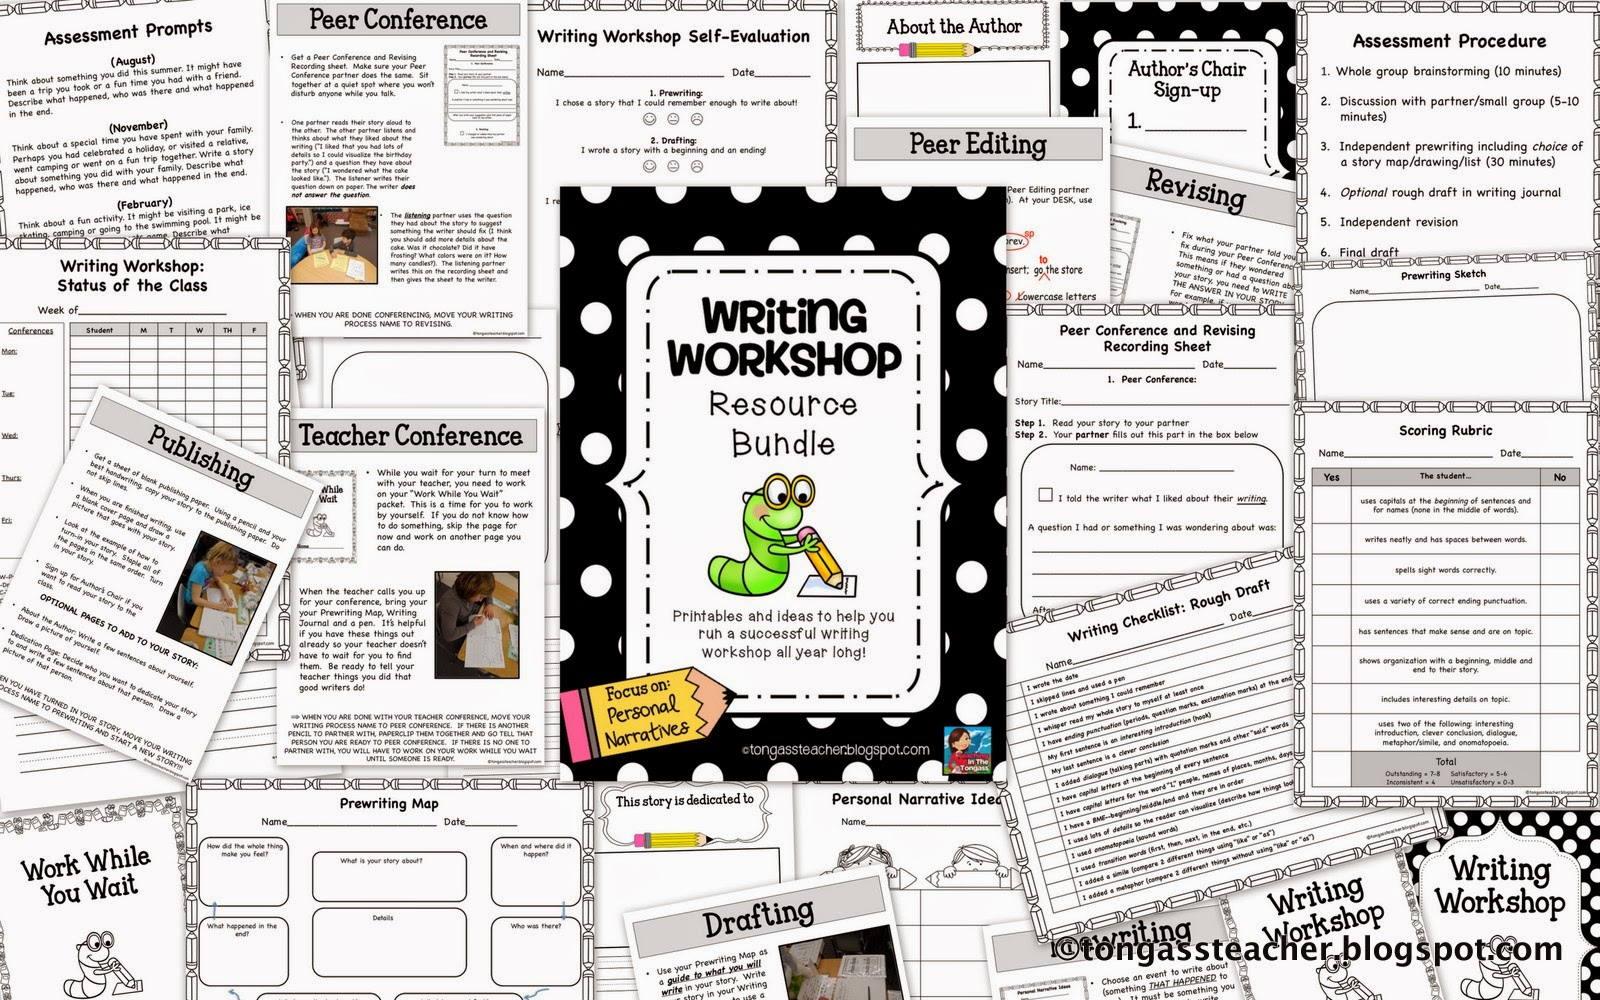 http://www.teacherspayteachers.com/Product/Writing-Workshop-Resource-Bundle-719383